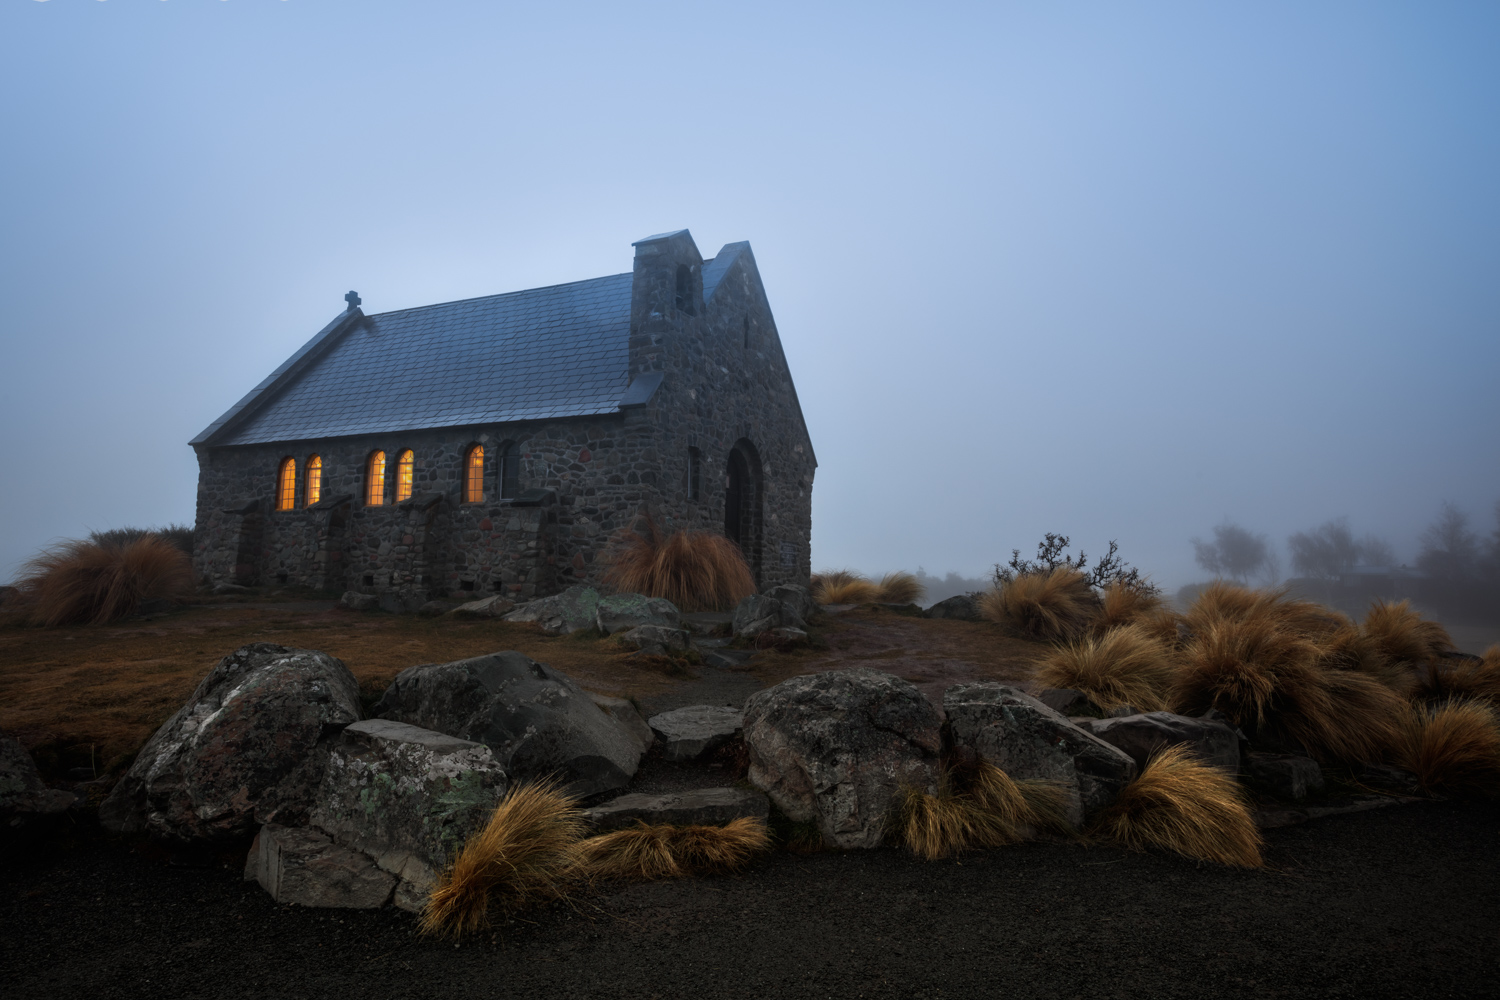 Landscape Photography Workshop Tours - The Church of the Good Shepherd, Lake Tekapo, New Zealand